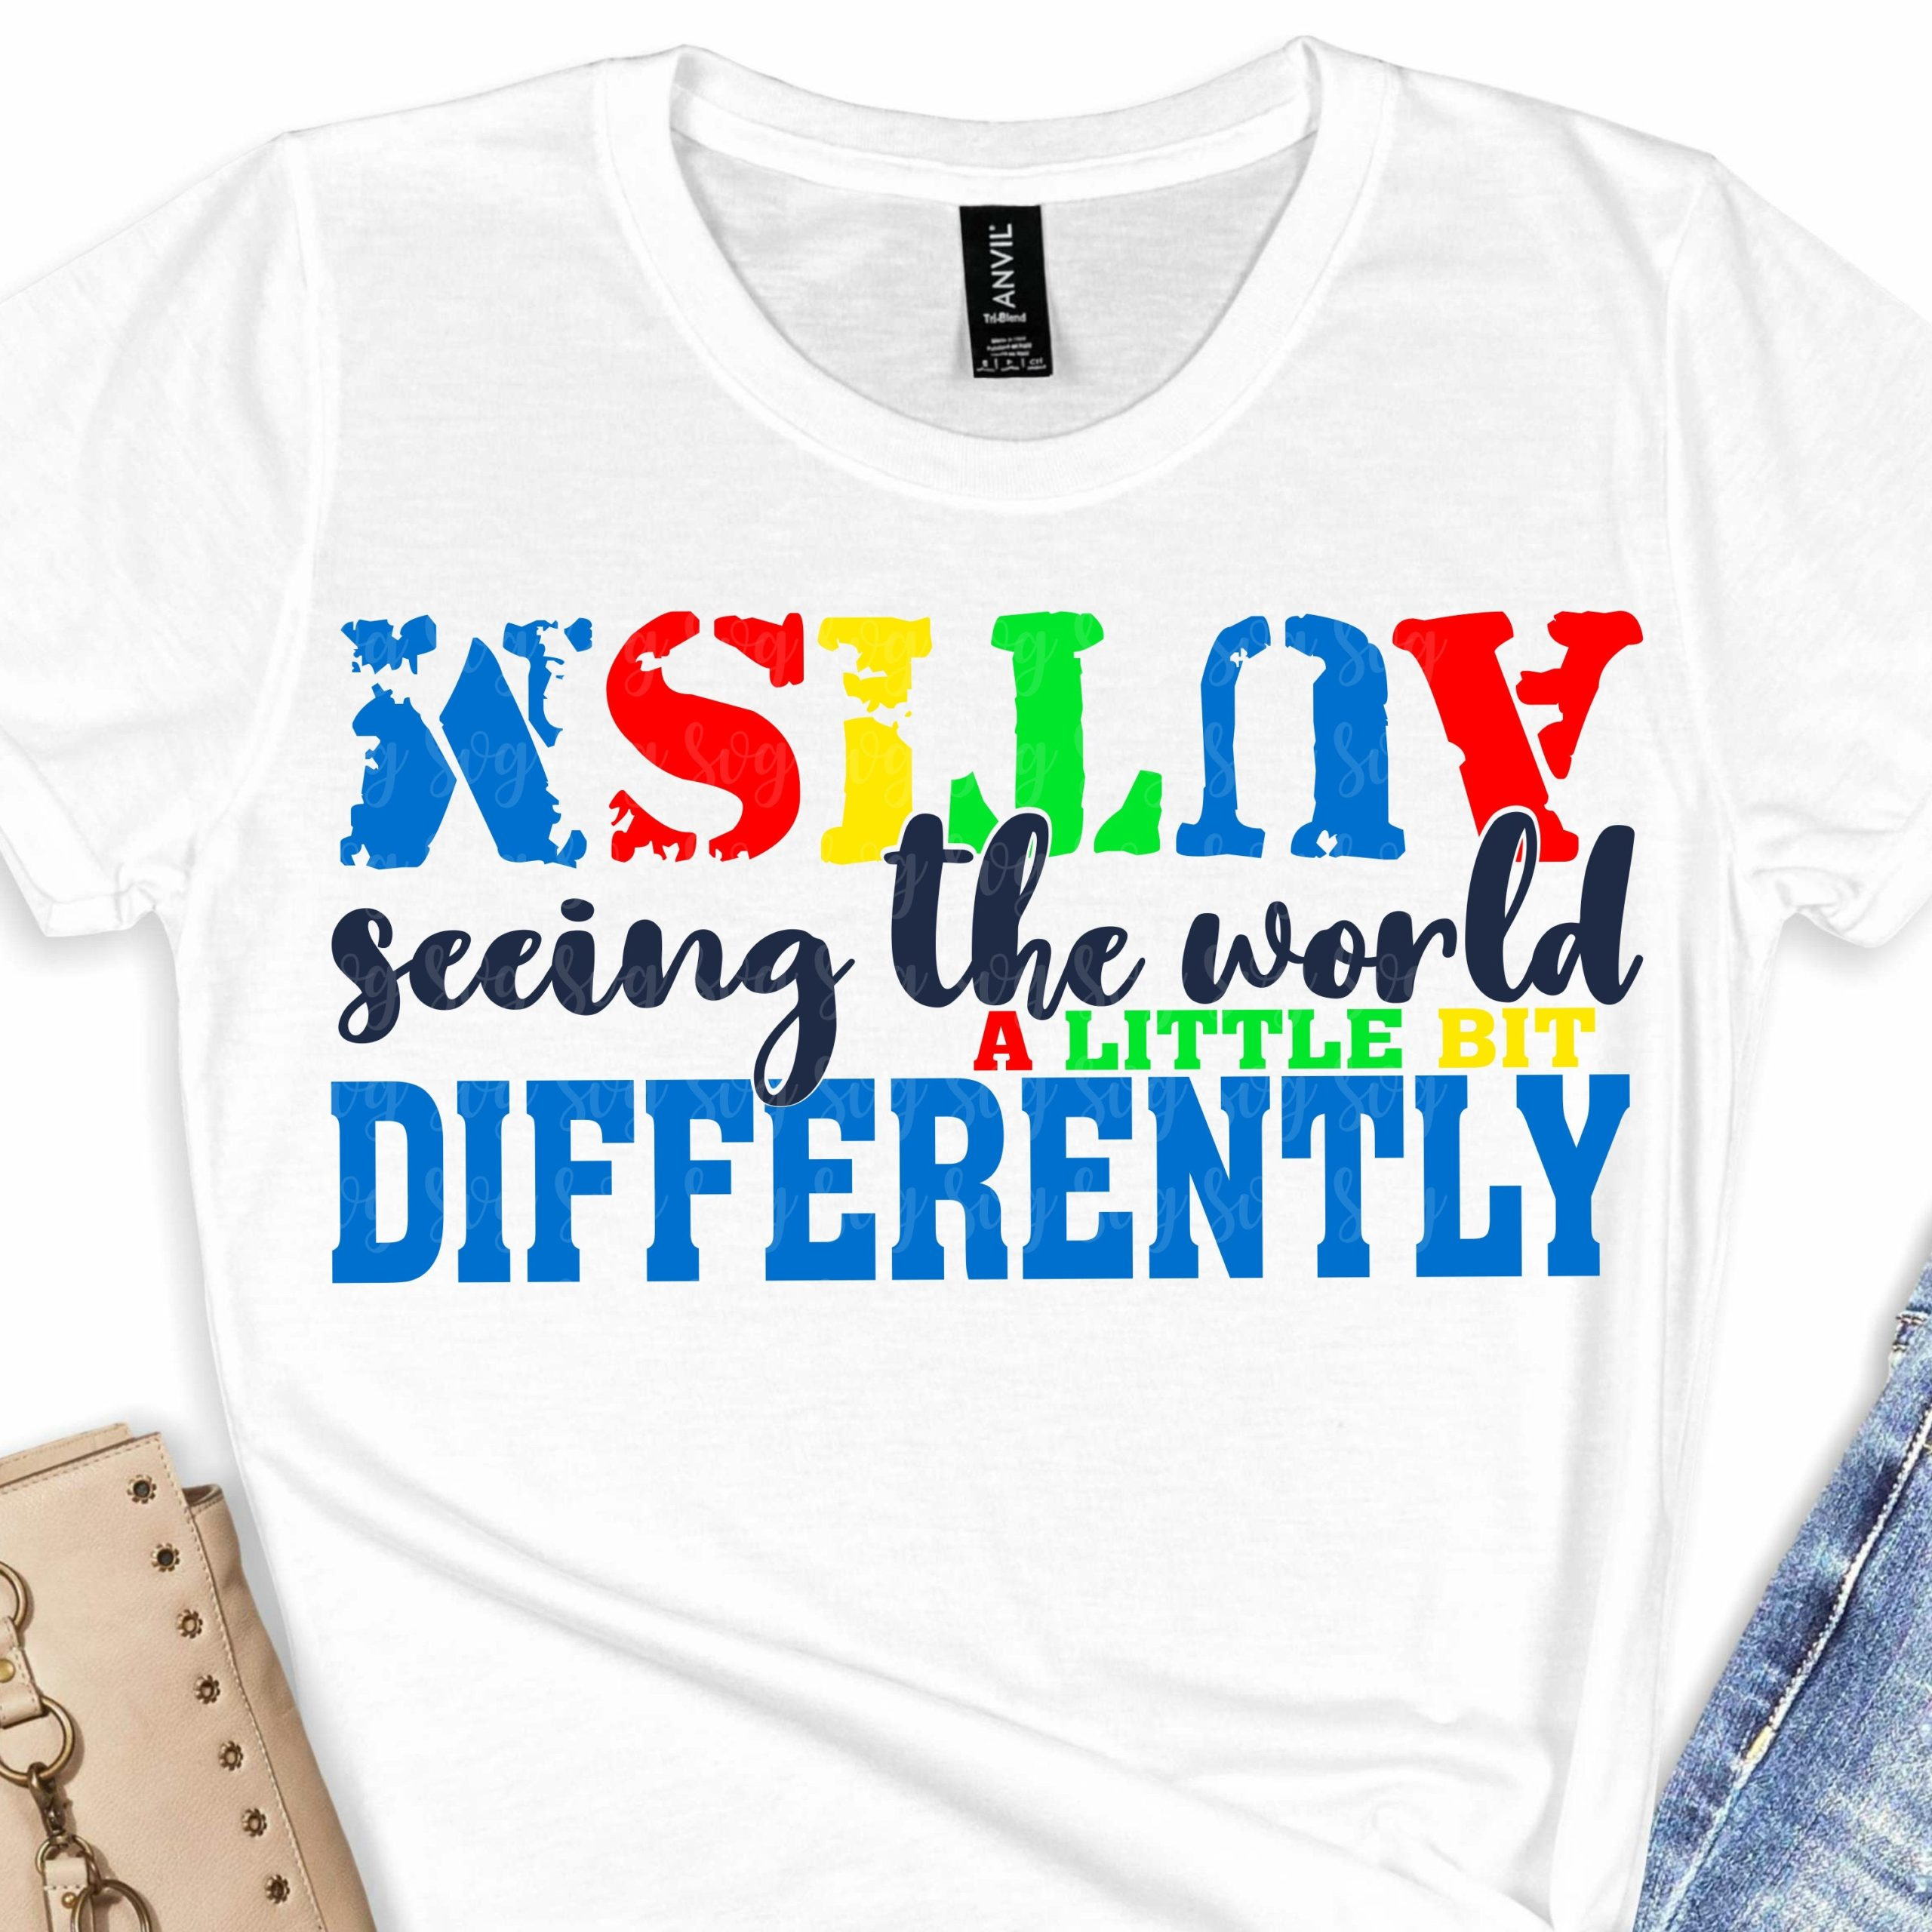 Autism-seeing-the-world-svgautism-be-kind-be-kind-autism-autism-svg-autism-puzzle-svgcricut-designssilhouette-autism-svgautism-world-5ef7924d